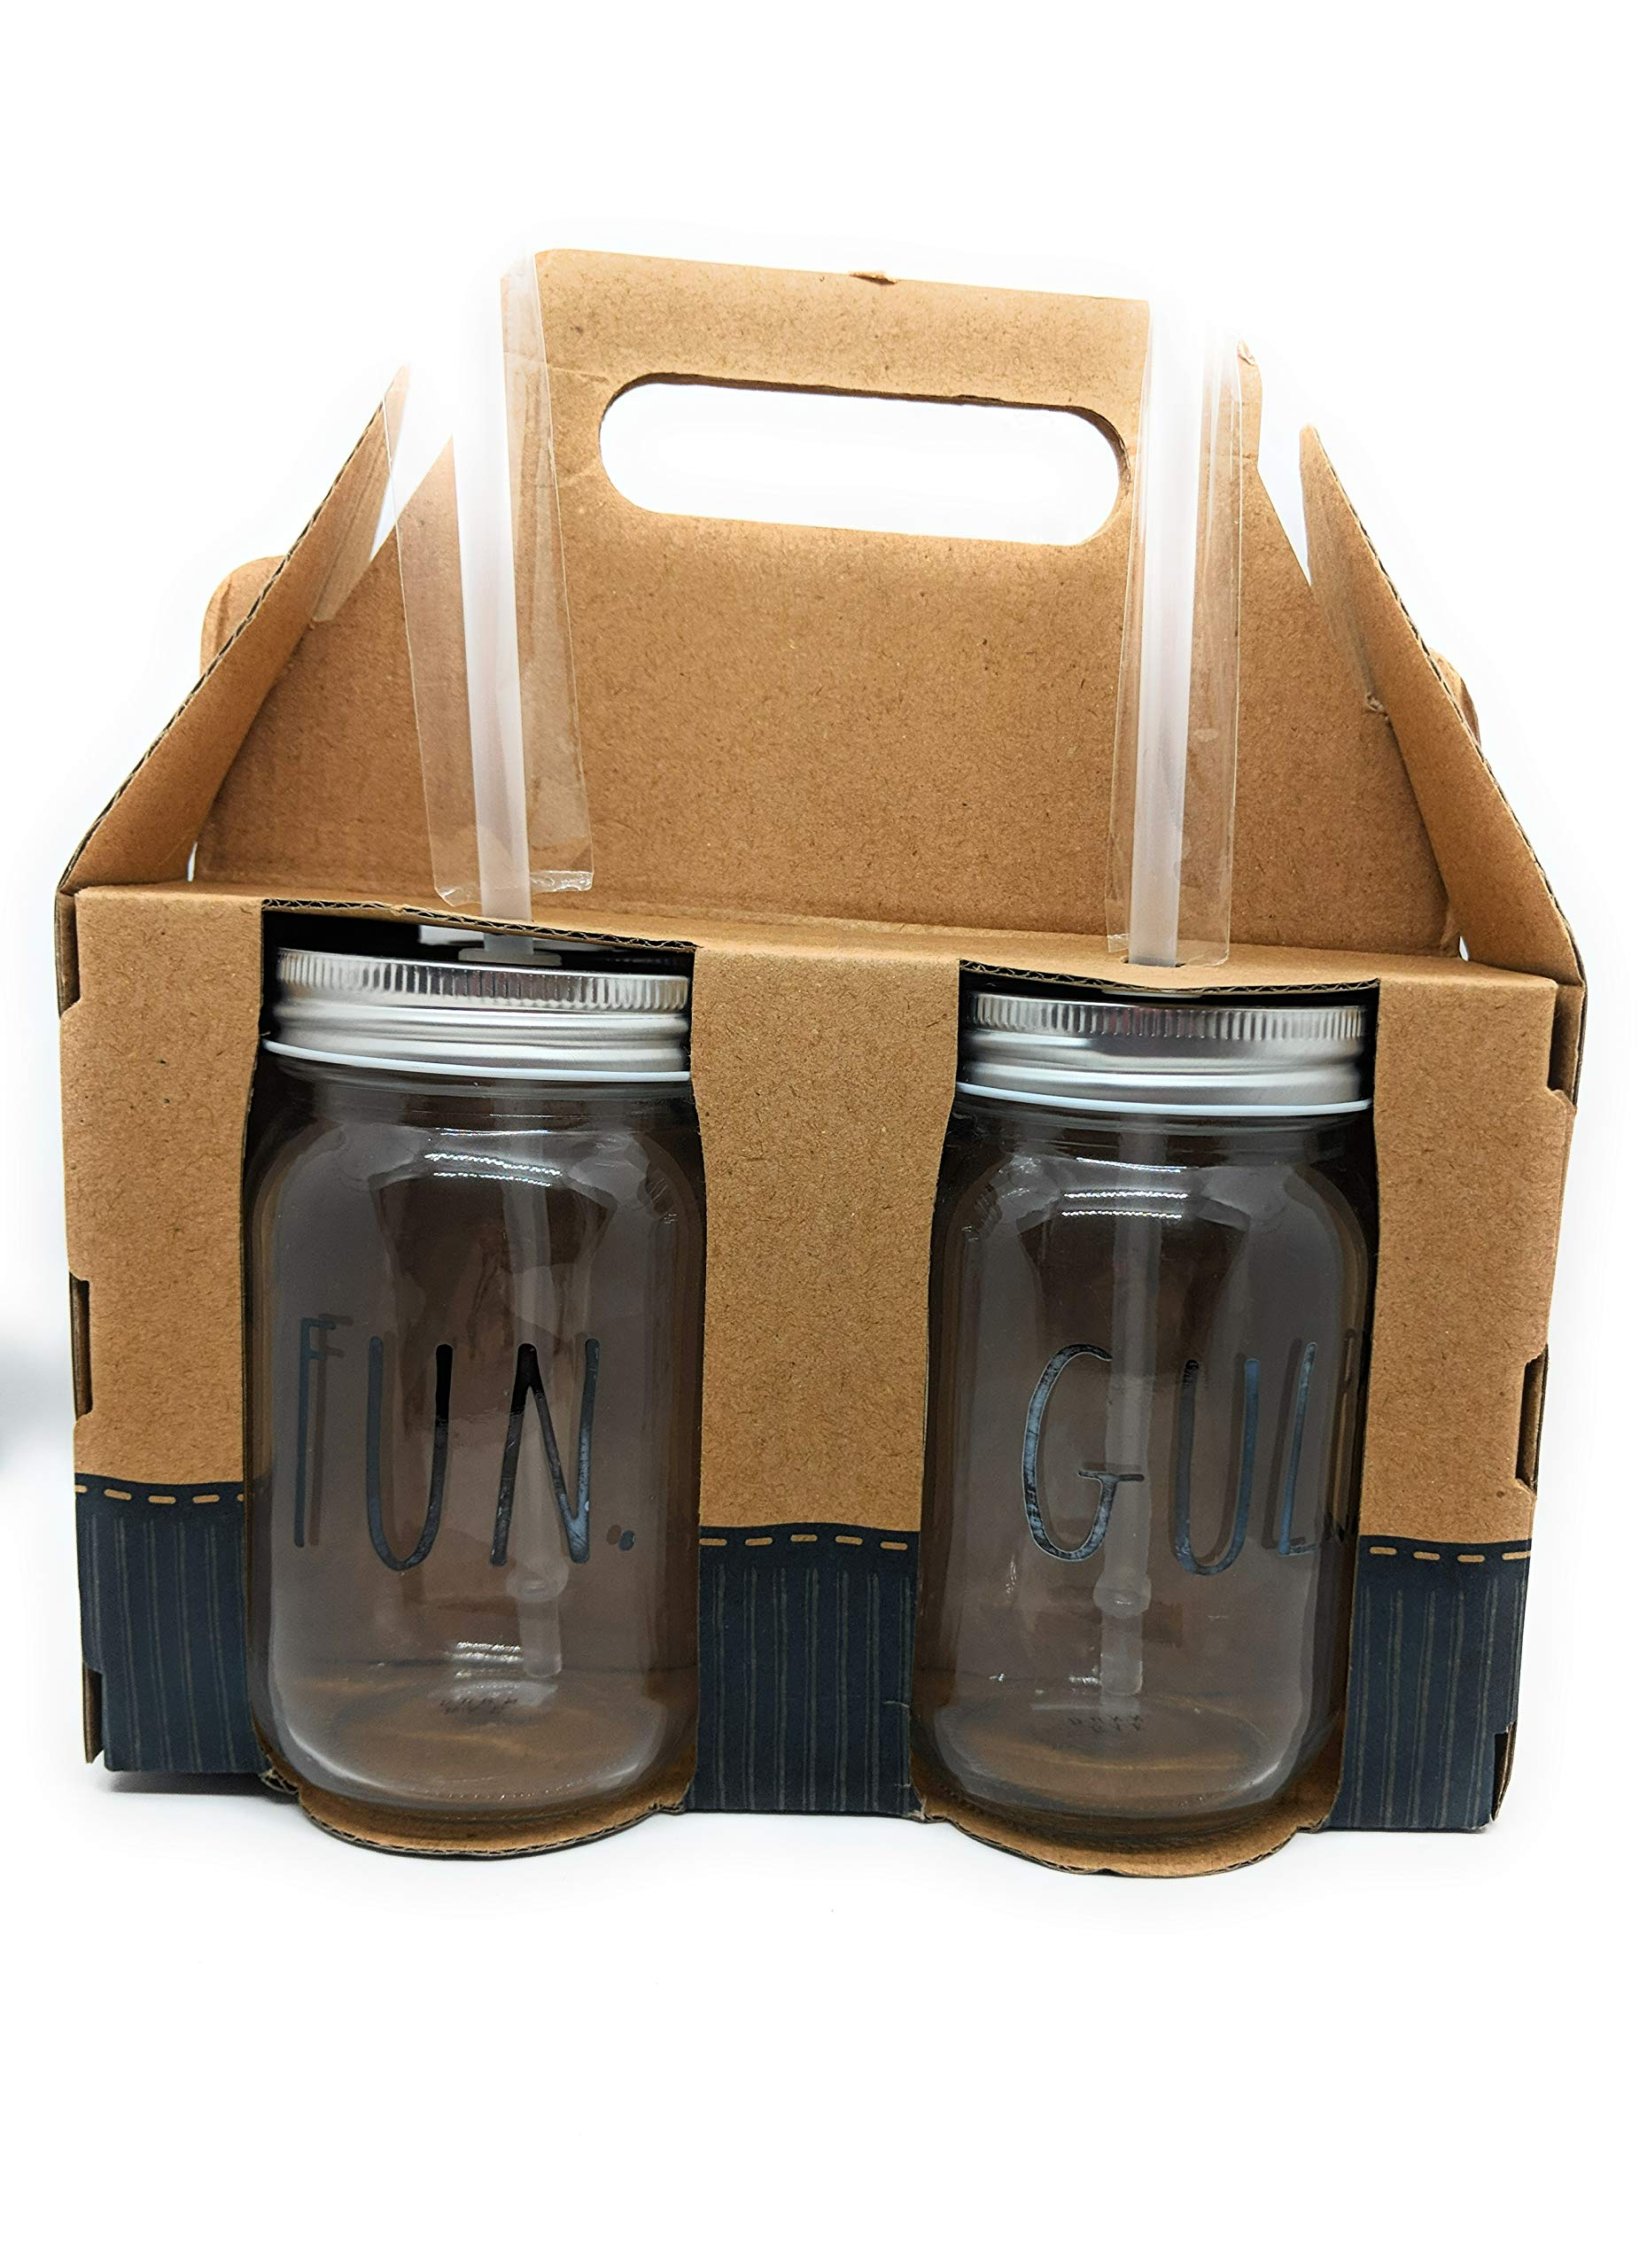 Rae Dunn by Home Essentials Mason Jars Drinking Glasses with Metal Lids and Hard Plastic Straws Glassware-Set of 4-15fl oz-''SIP''''FLOW''''FUN''''GULP'' in LL Large Letters